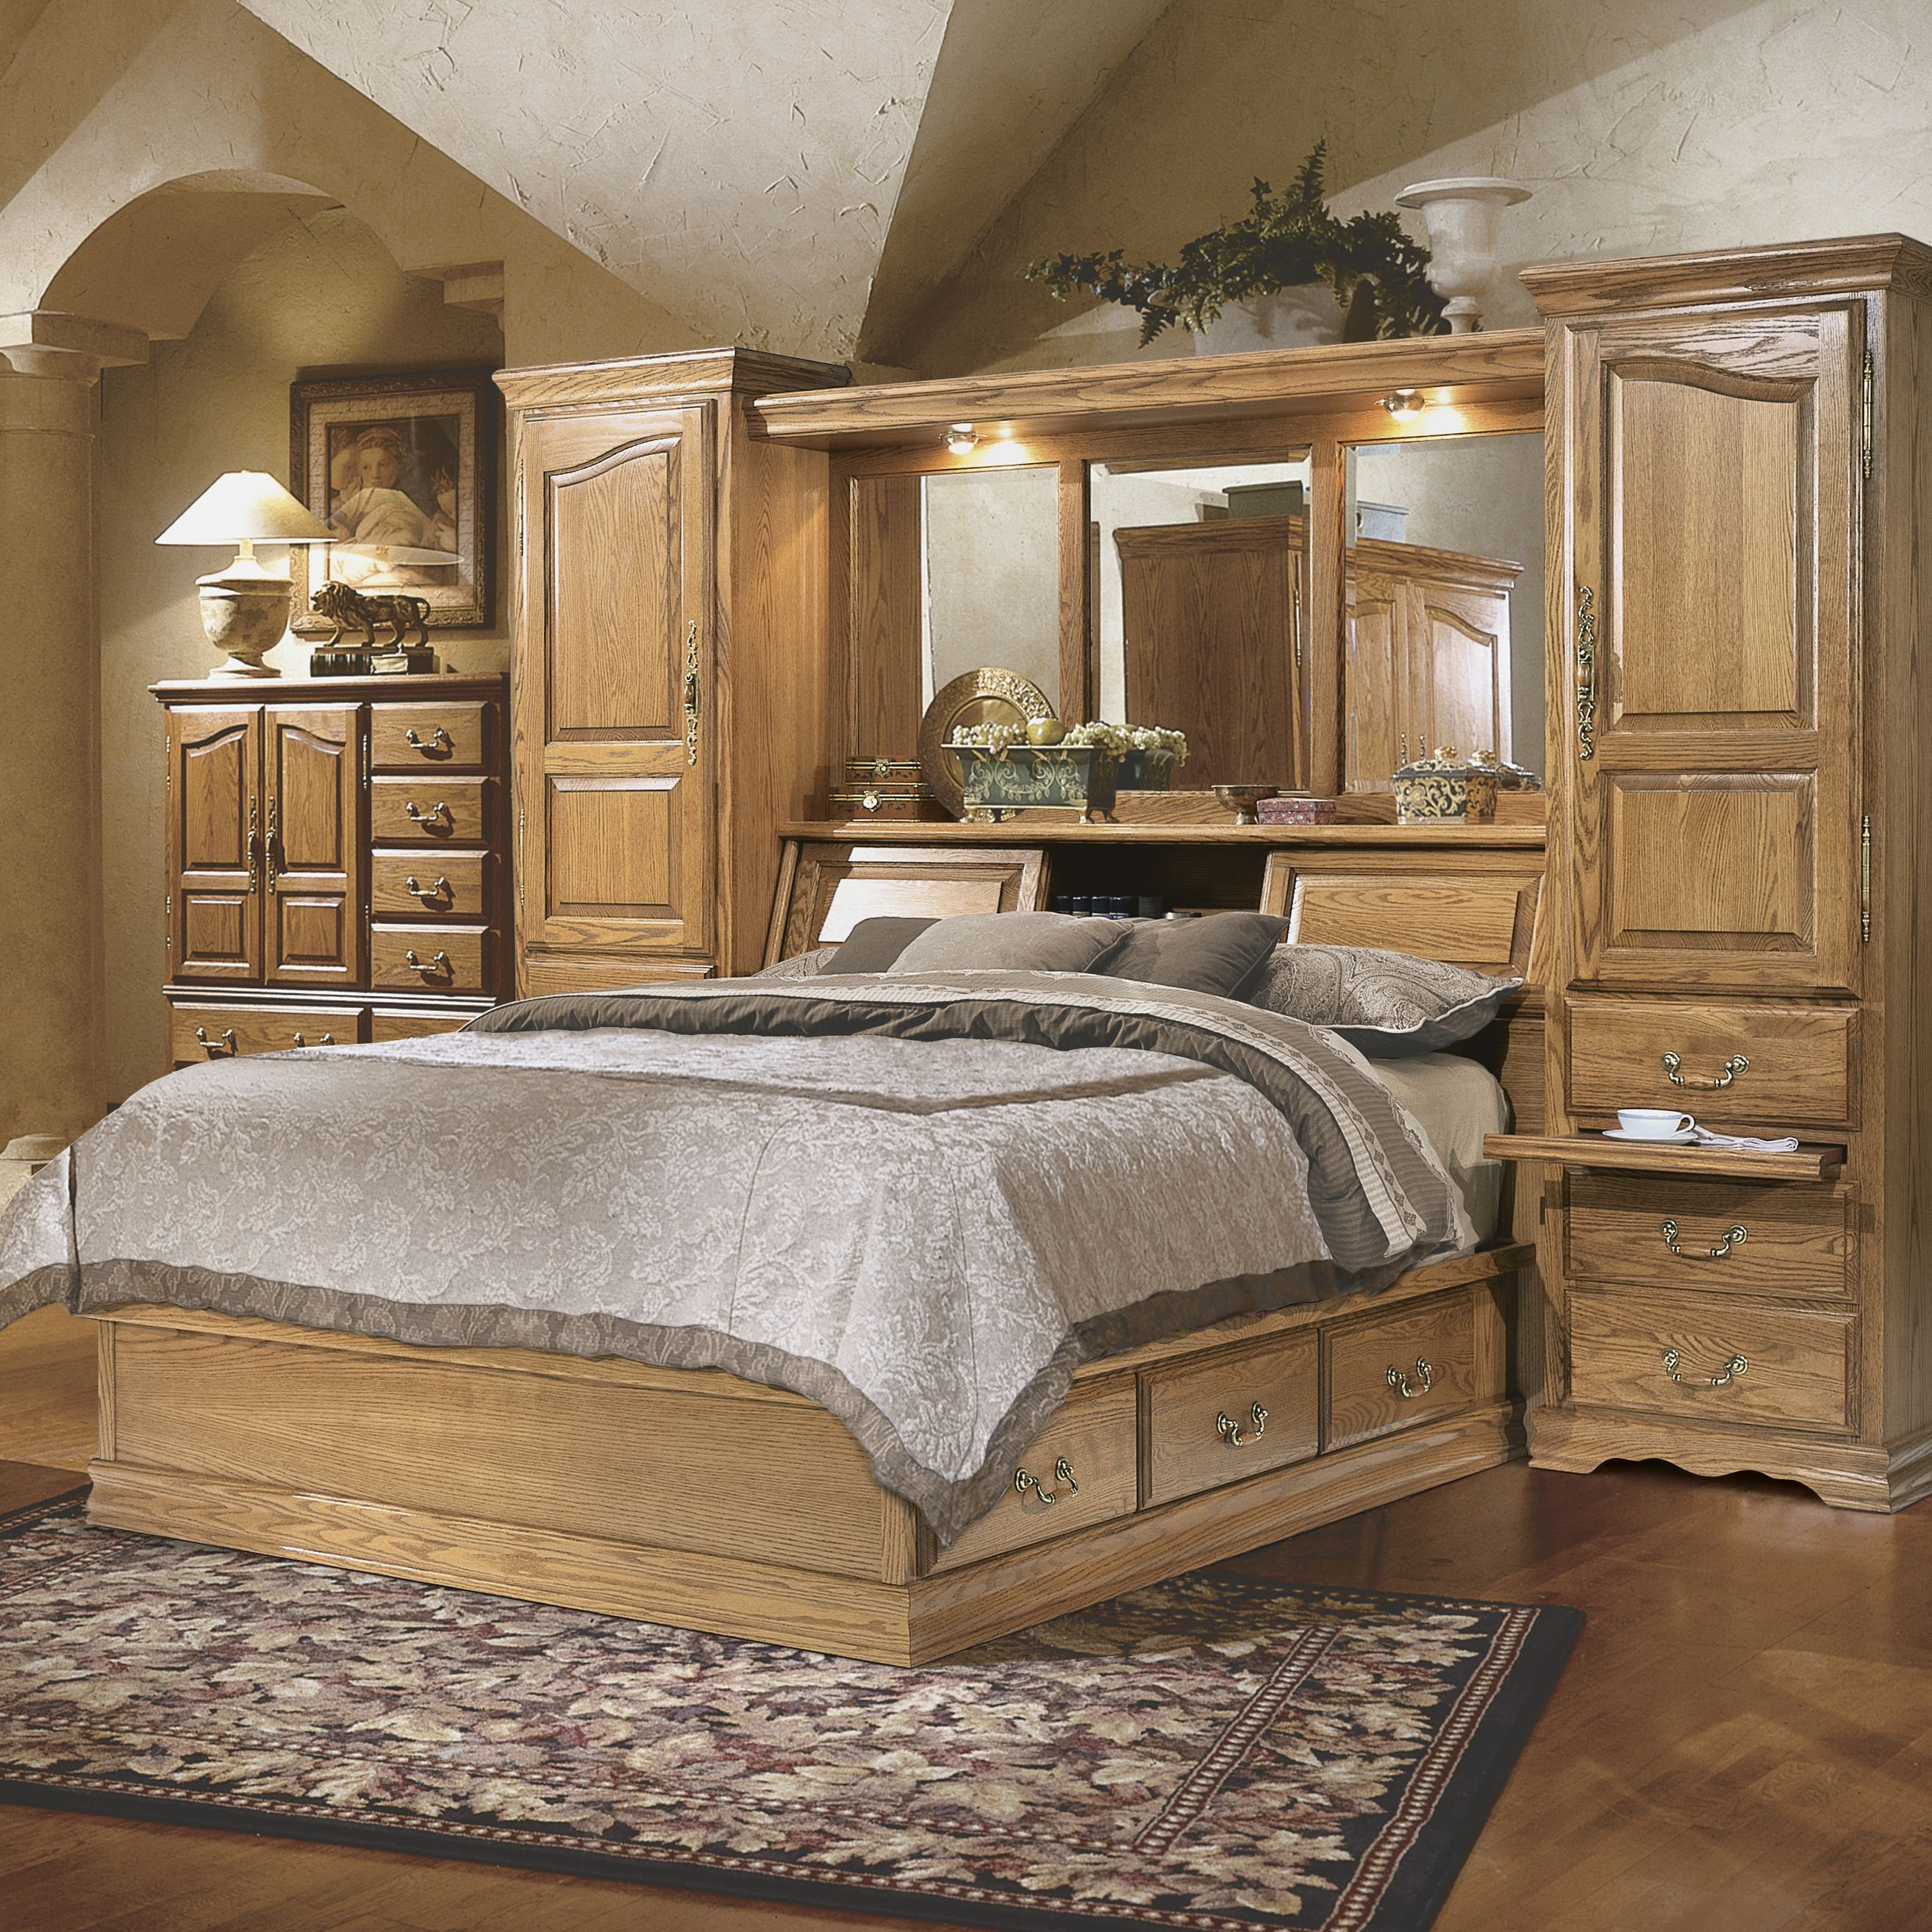 Masterpiece Pier Group bedroom set provides maximum